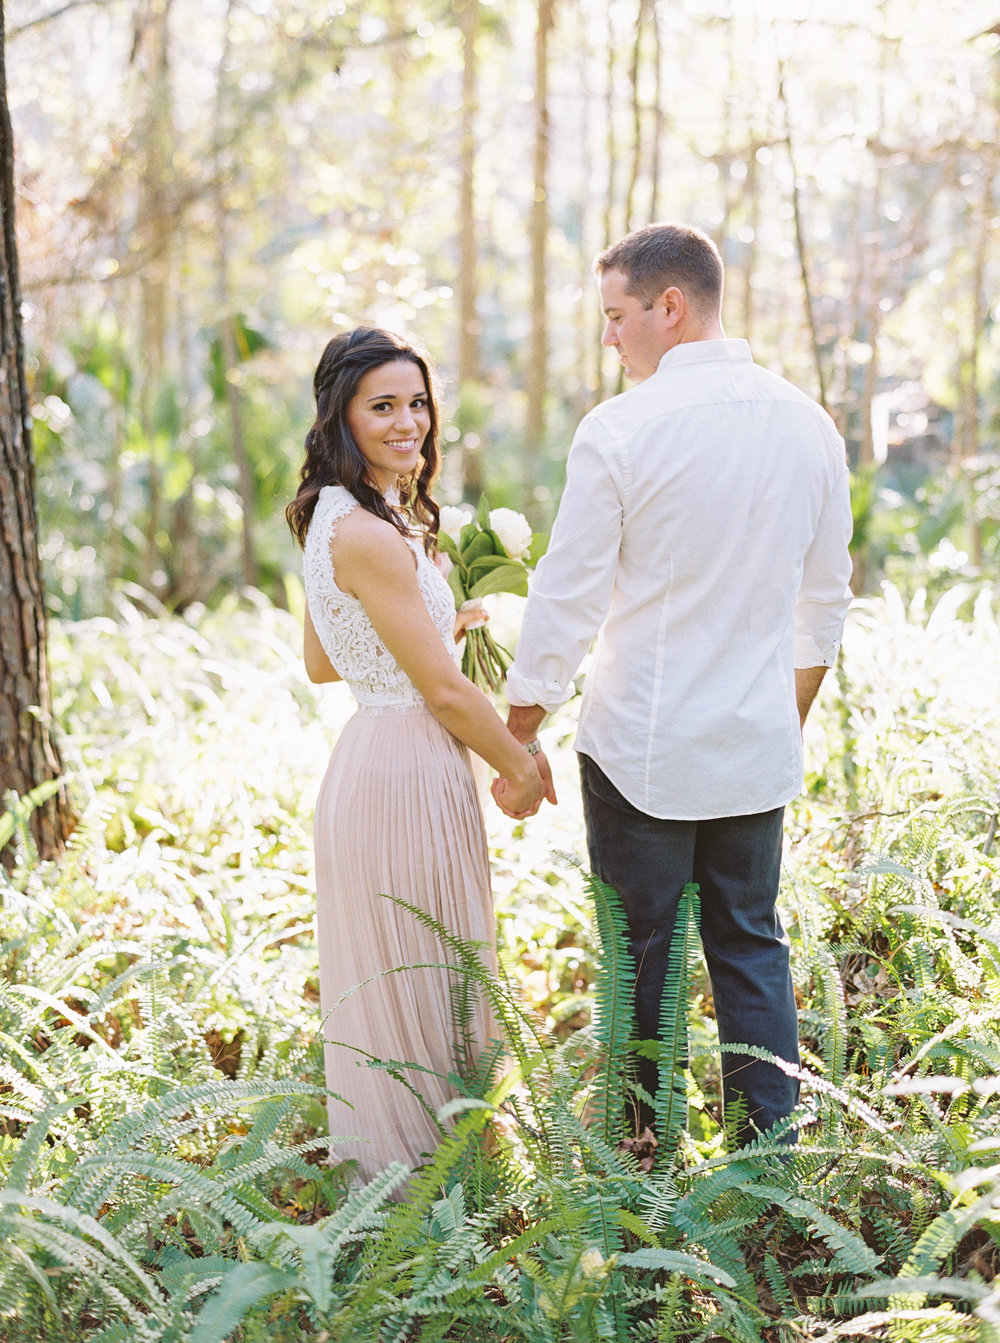 Bride and groom holding hands for styled engagement session photos at Wekiwa Springs State Park. Bride wearing Morning Lavender blush pink pleated maxi skirt and beaded, lace top.